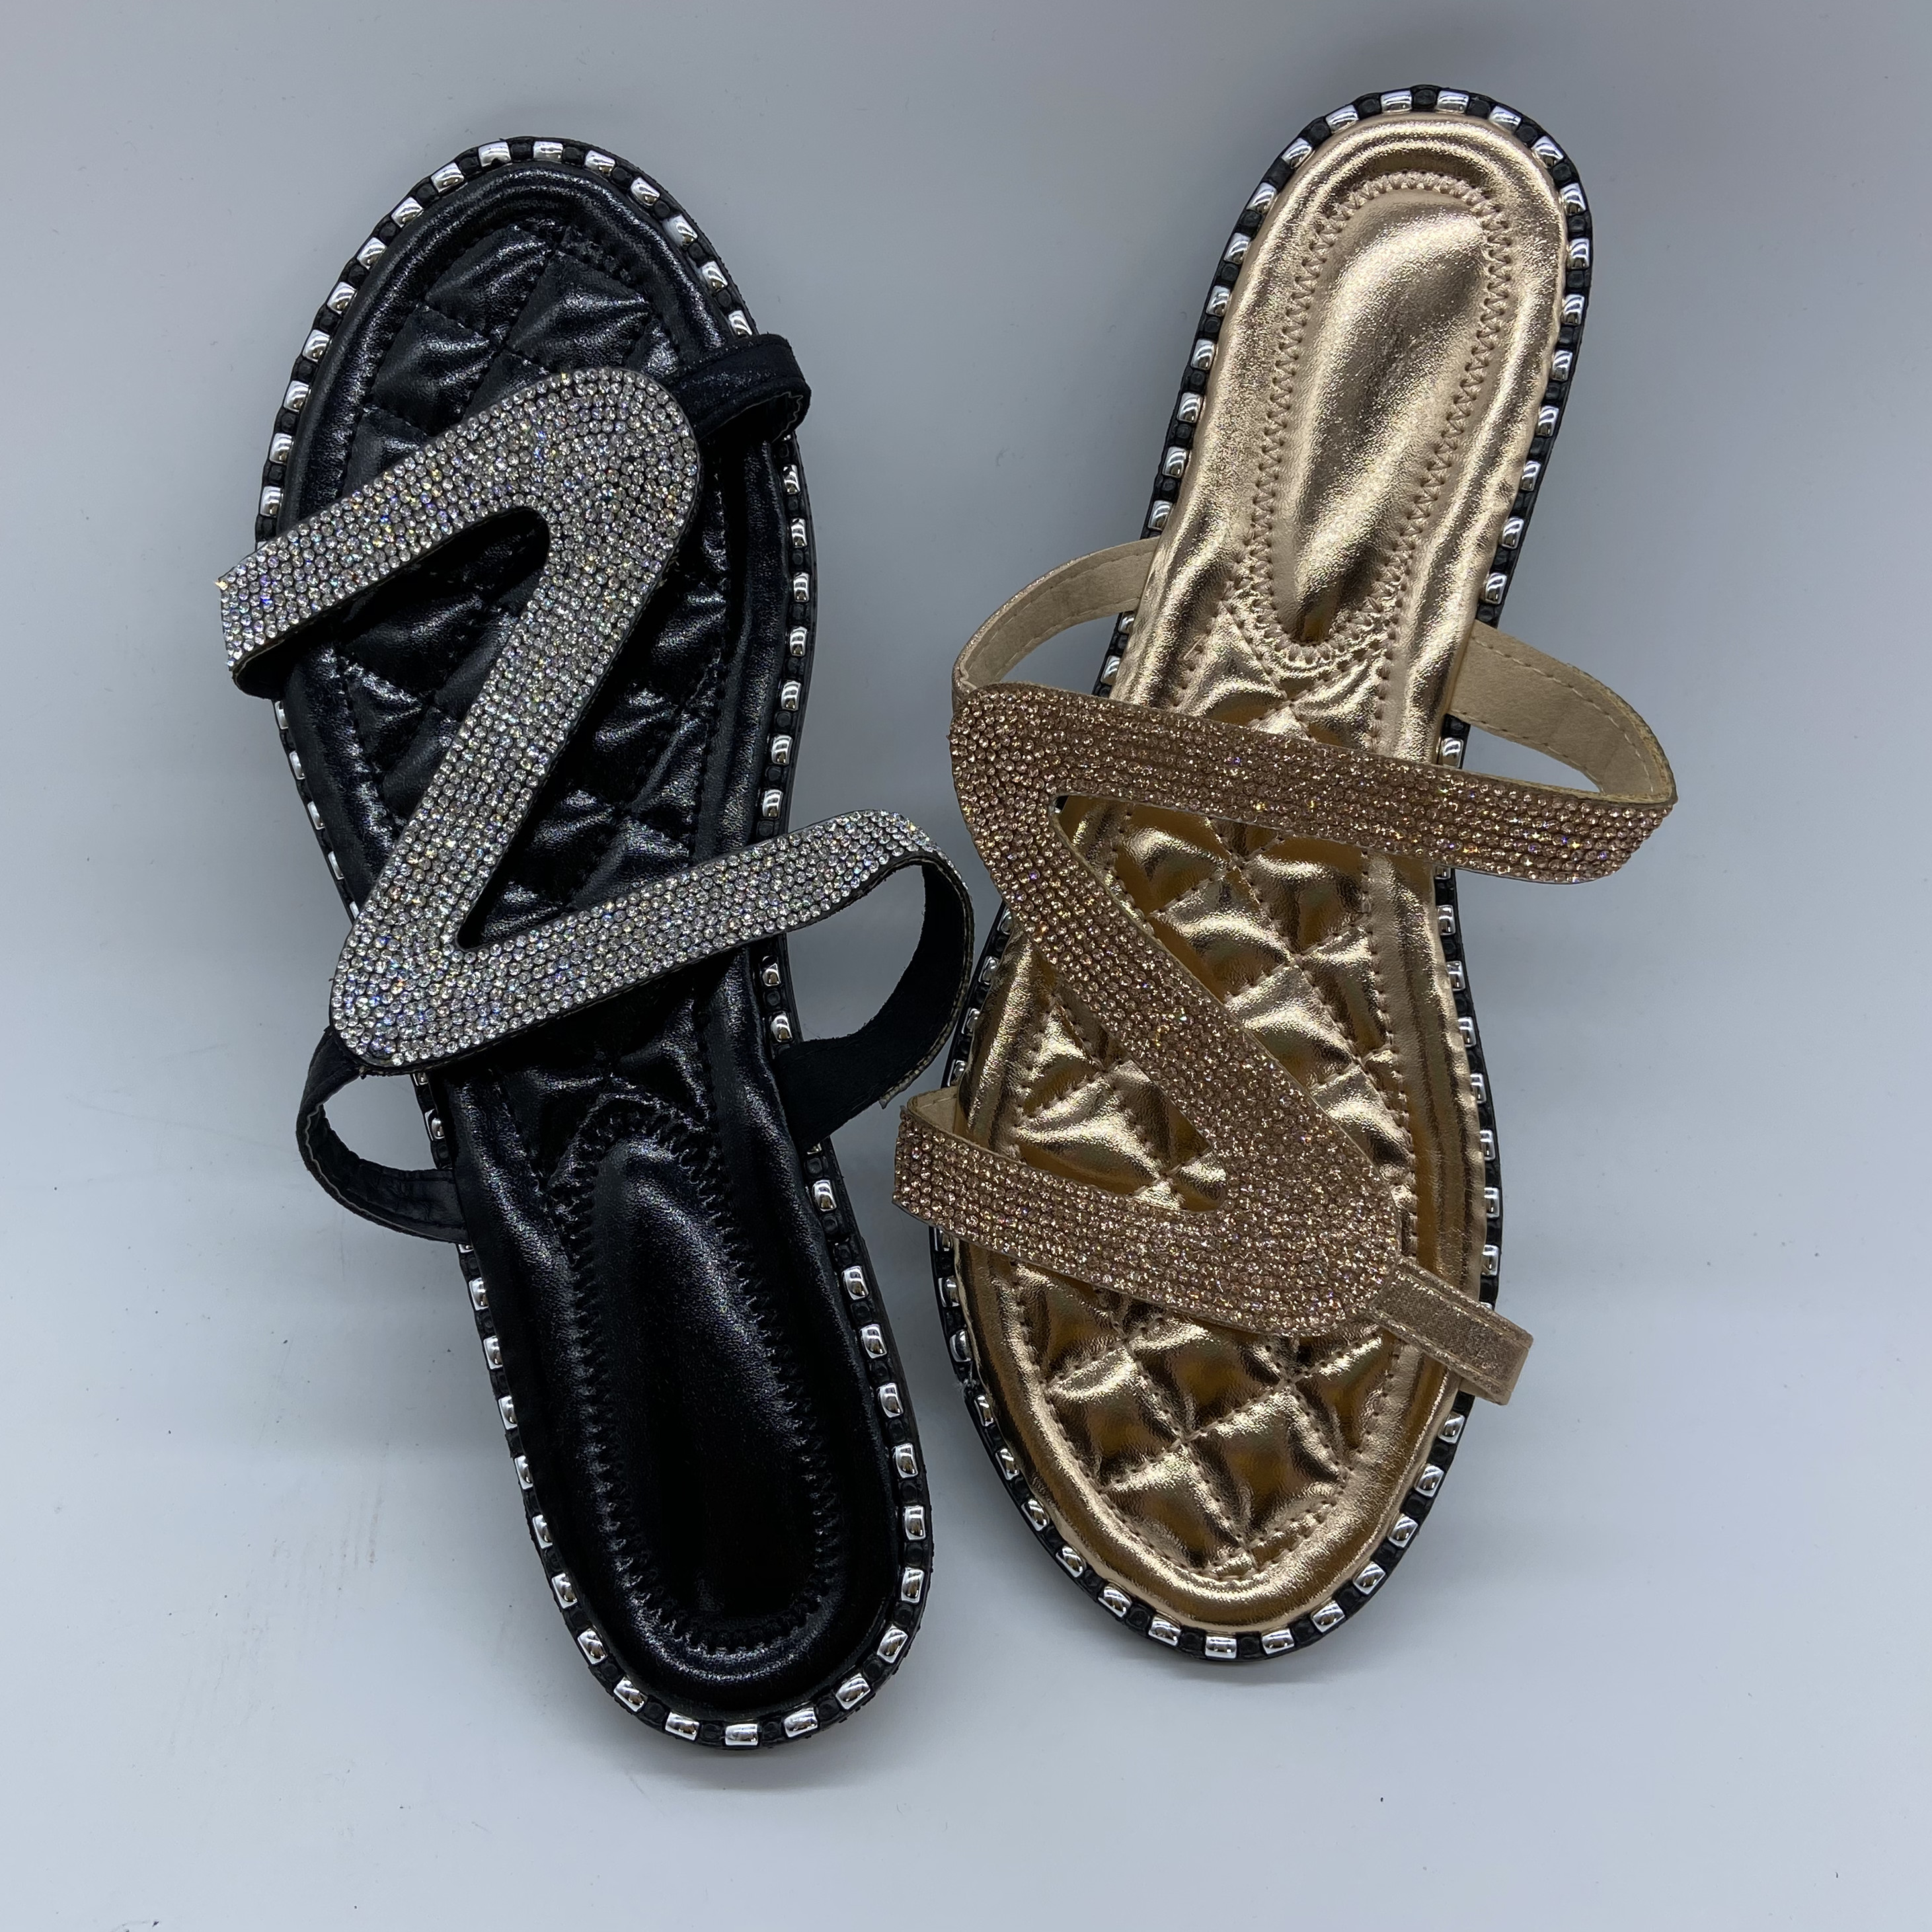 S8003  Hot seller hot style women's slippers 2020 summer fashion beach shoes women's shoes